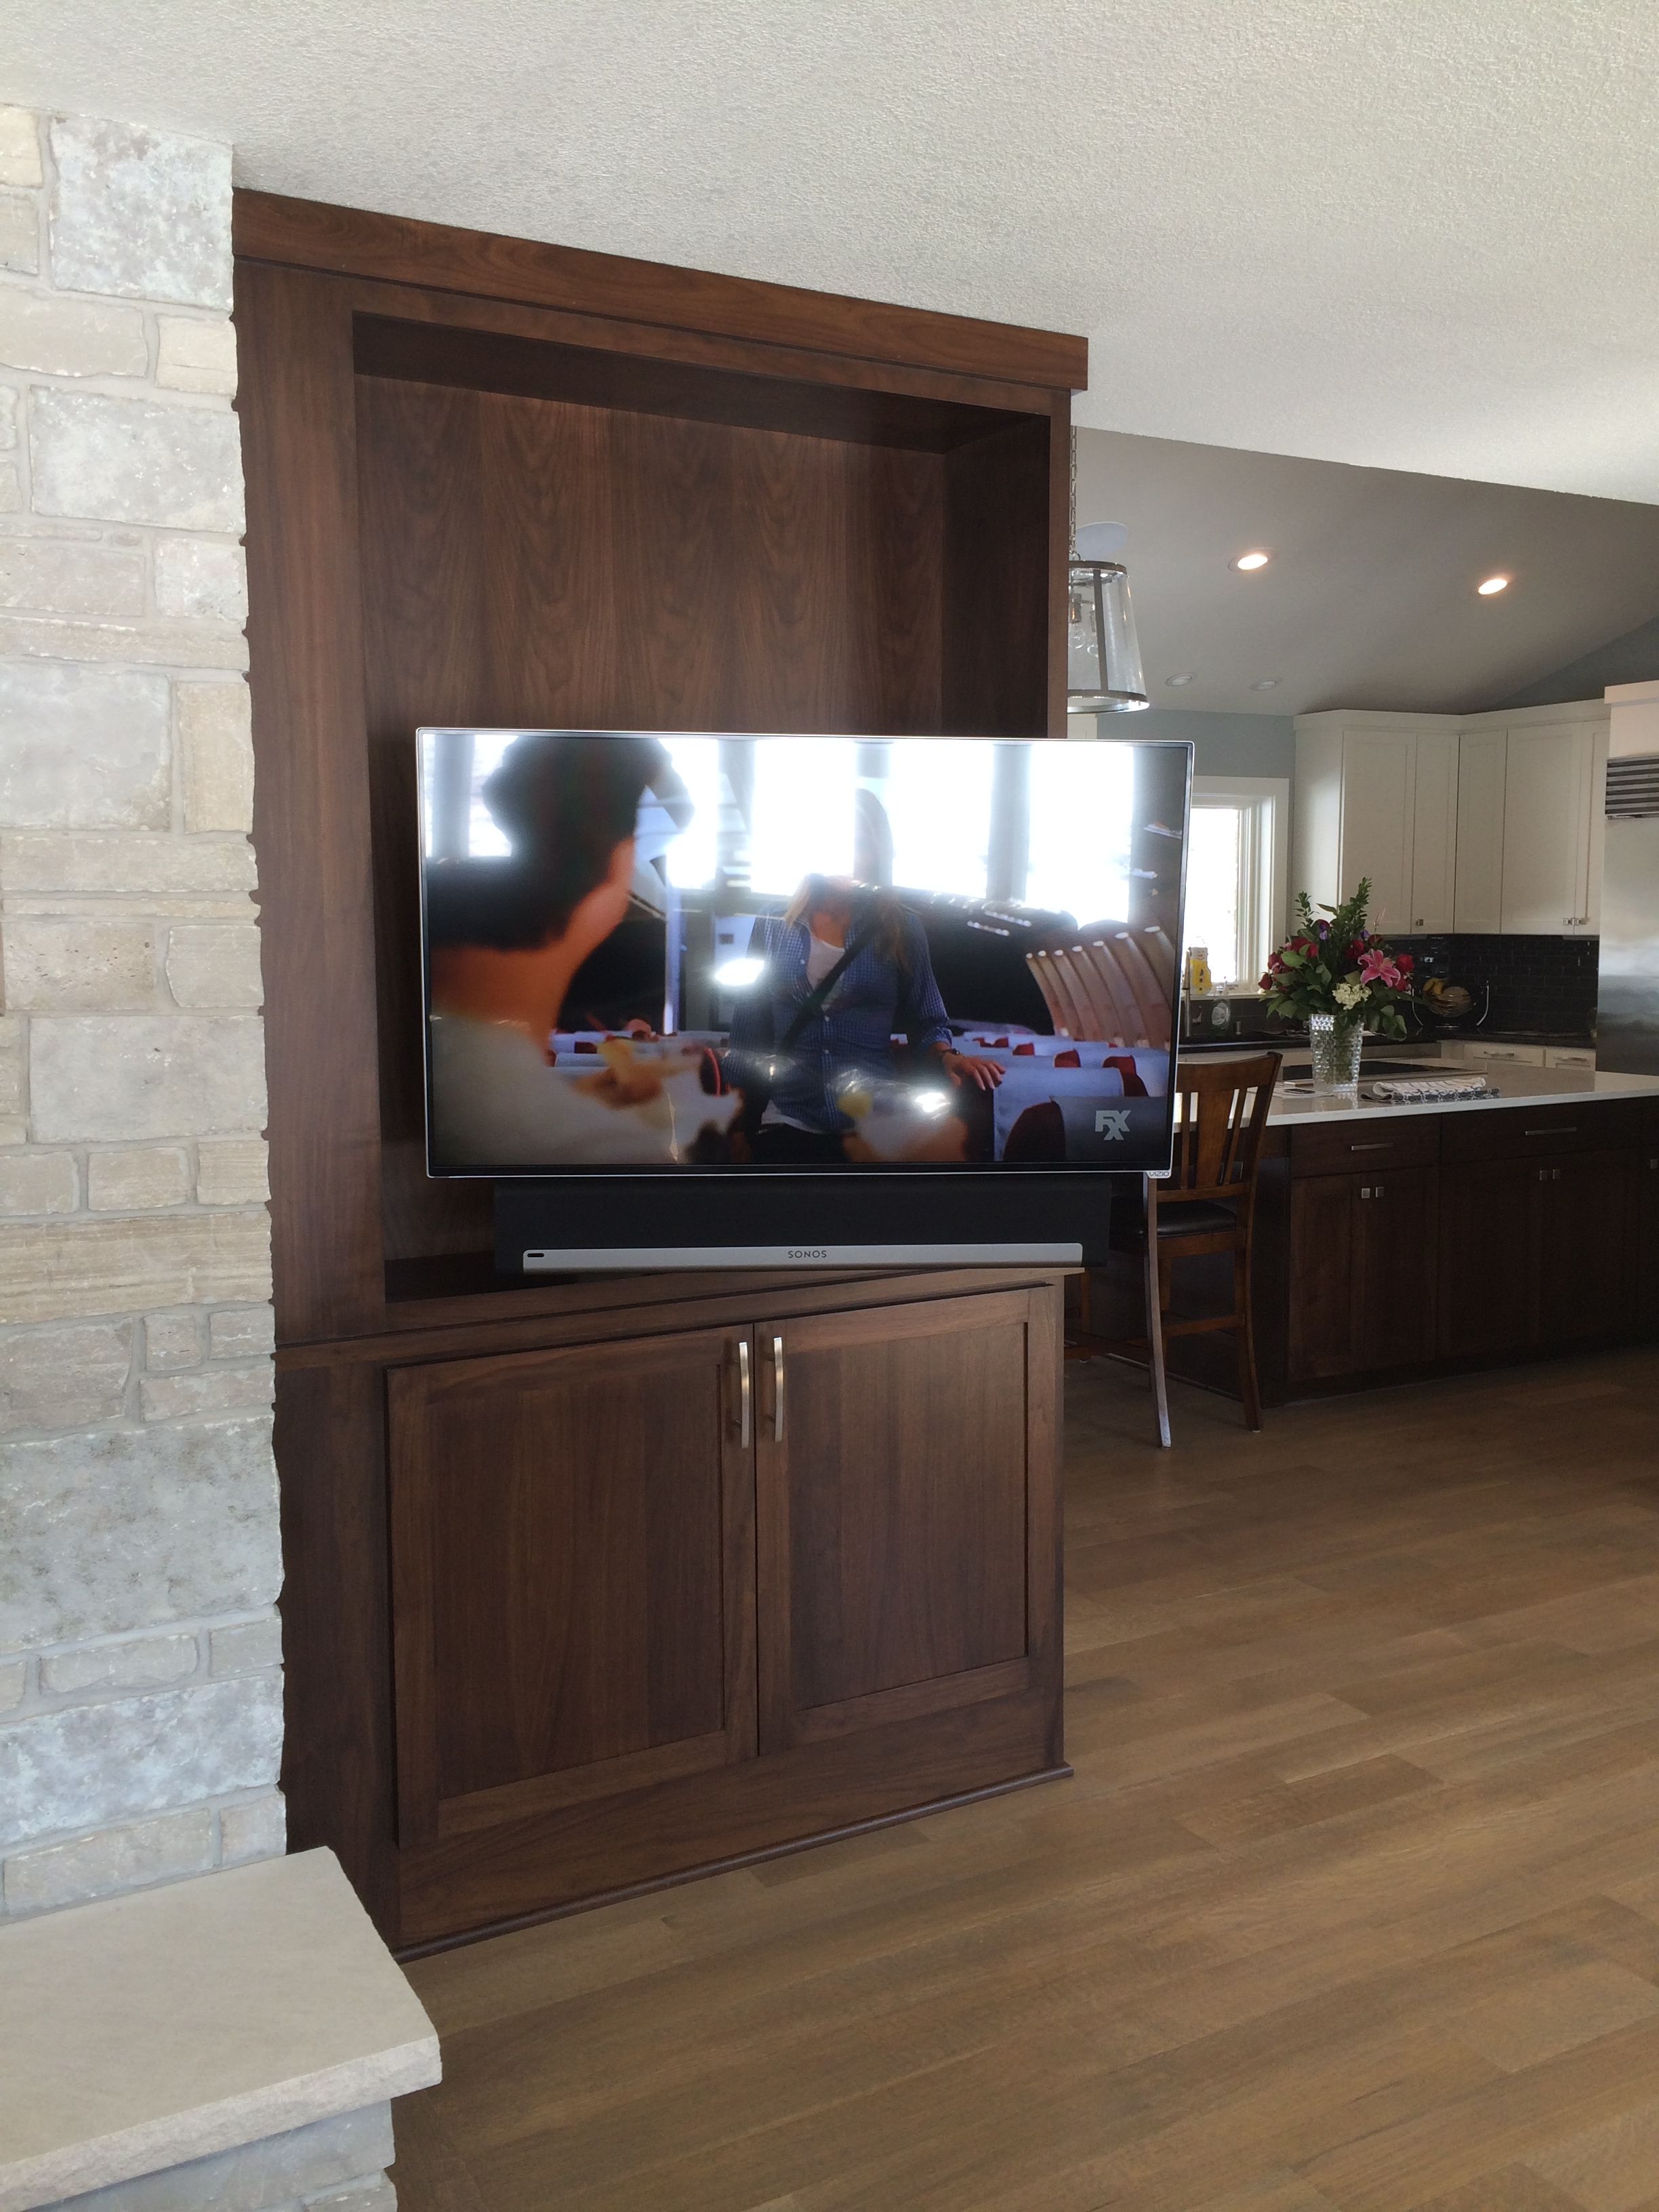 Very Cool Install In Which We Mounted A Flat Panel Tv And Sonos How To Home Theater System Playbar Soundbar